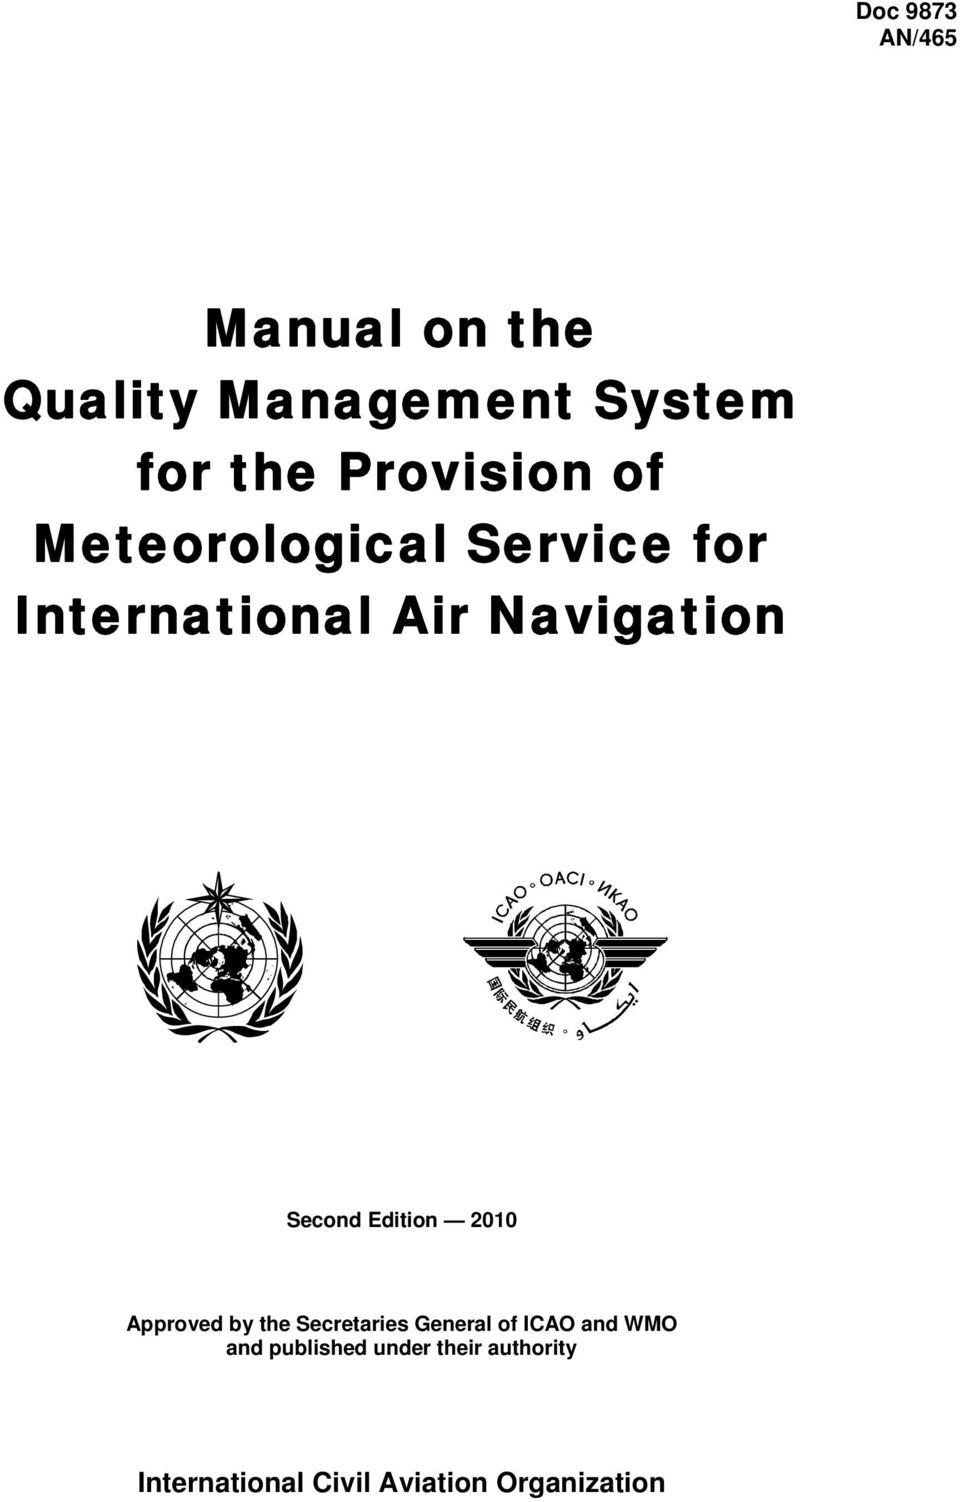 Second Edition 2010 Approved by the Secretaries General of ICAO and